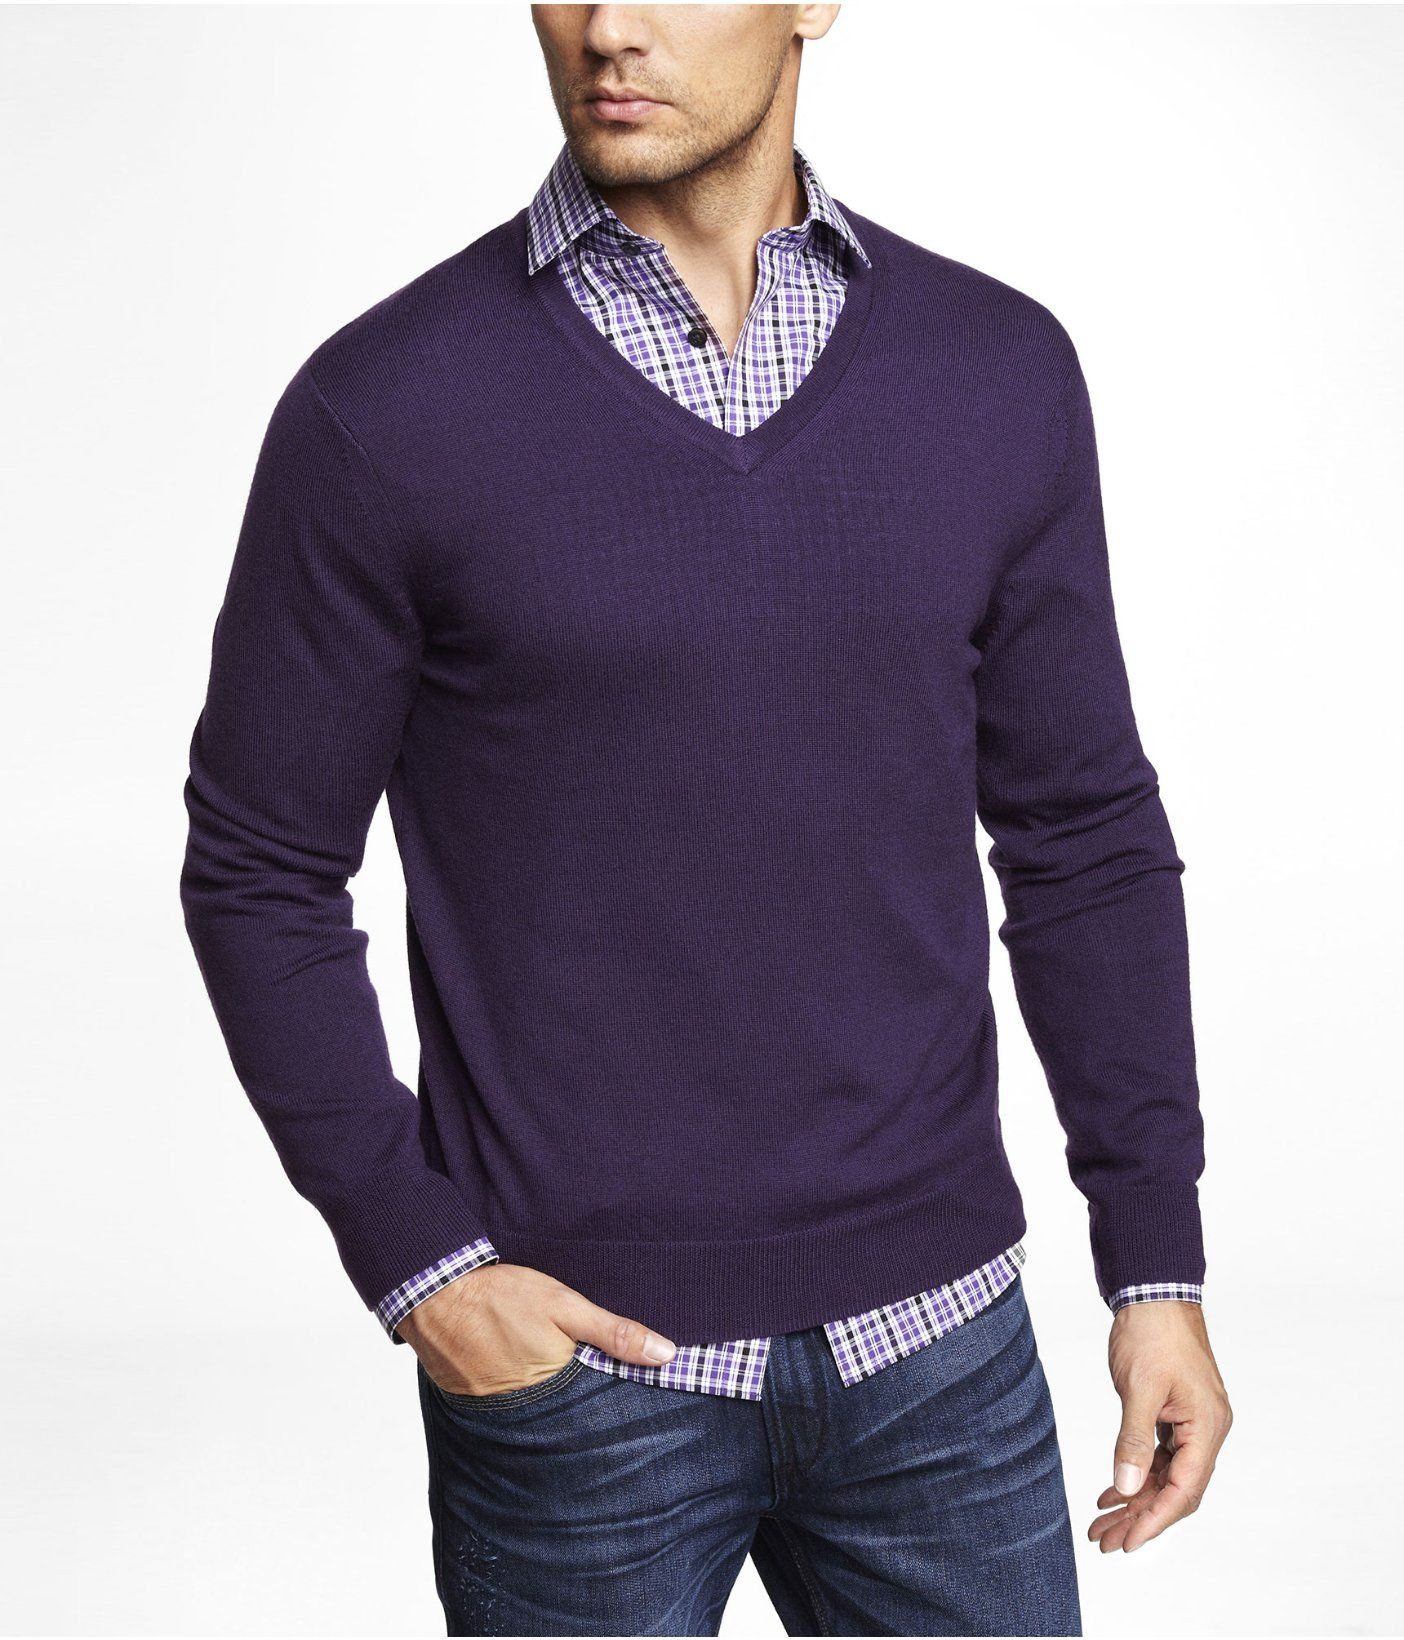 MERINO WOOL V-NECK SWEATER | Express... Now for only $23.99 ...